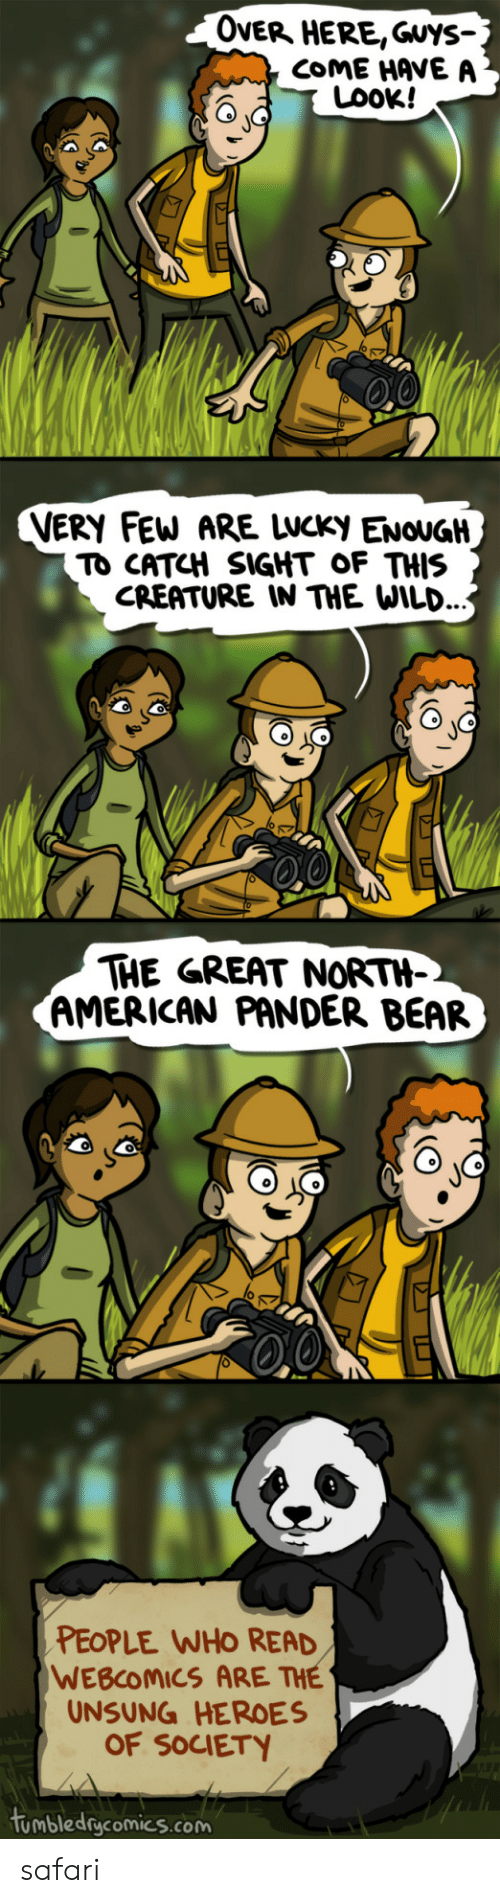 unsung: OveR HERE,Guys-  COME HAVE A  LOOK!  VERY FEW ARE LWCKy ENOUGH  TO CATCH SIGHT OF THIS  CREATURE IN THE WILD.  THE GREAT NORTH-  AMERICAN PANDER BEAR  PEOPLE WHO READ  WEBCOMICS ARE THE  UNSUNG HEROES  OF SOCIETY  tumbledgcomics.com safari